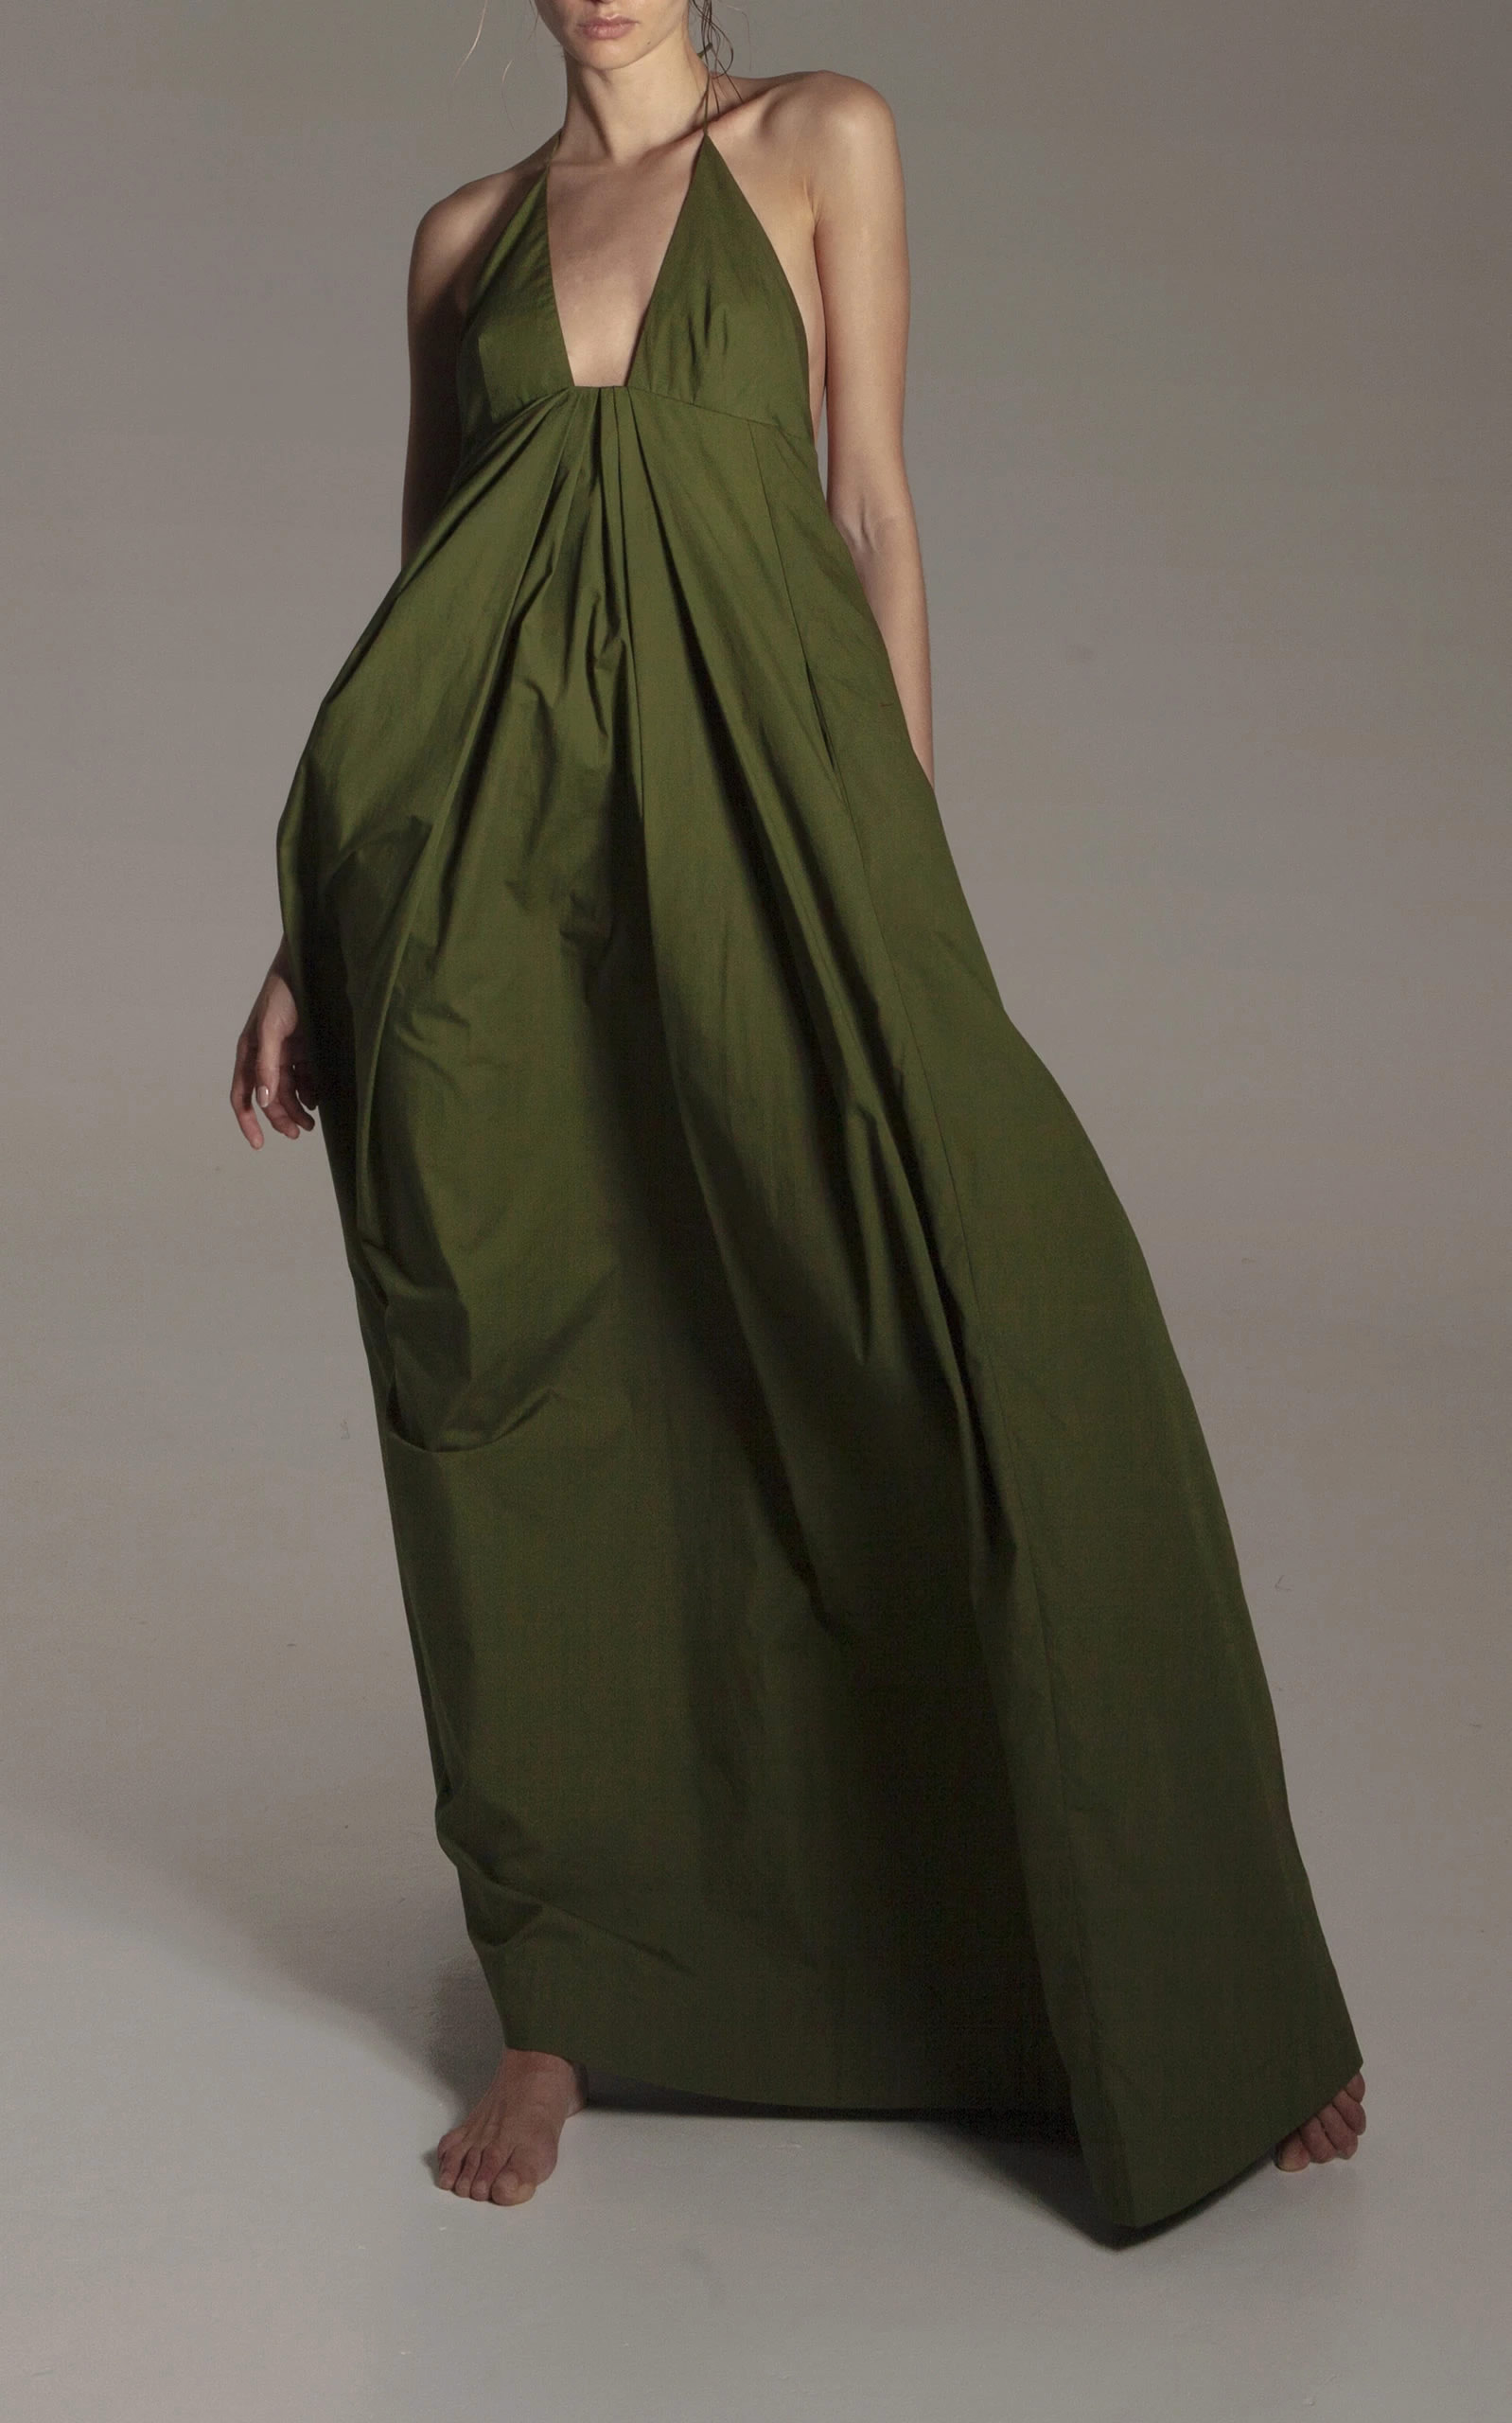 Kalita - Destination Wear - Green Atlas Poplin Dress